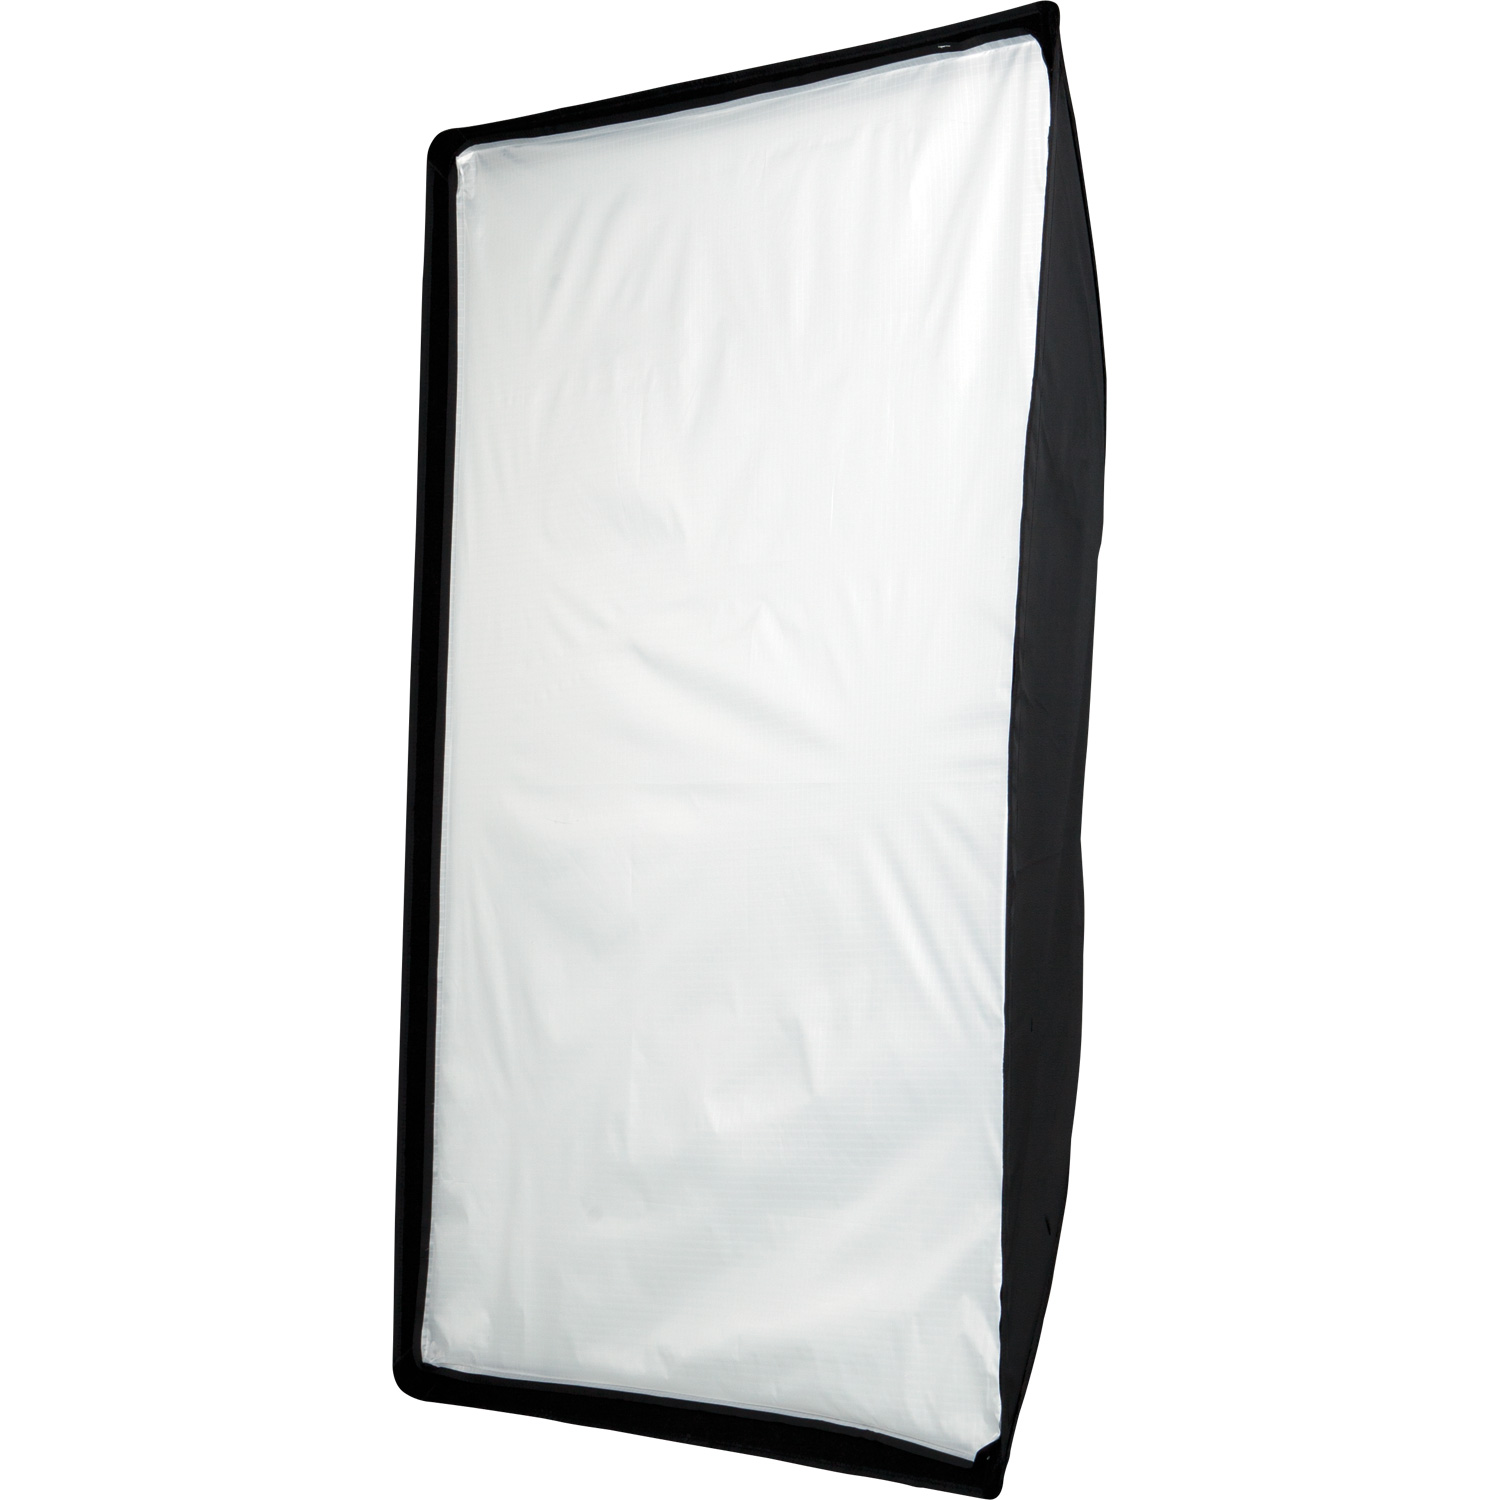 36-in. x 48-in. Pro Shallow Softbox